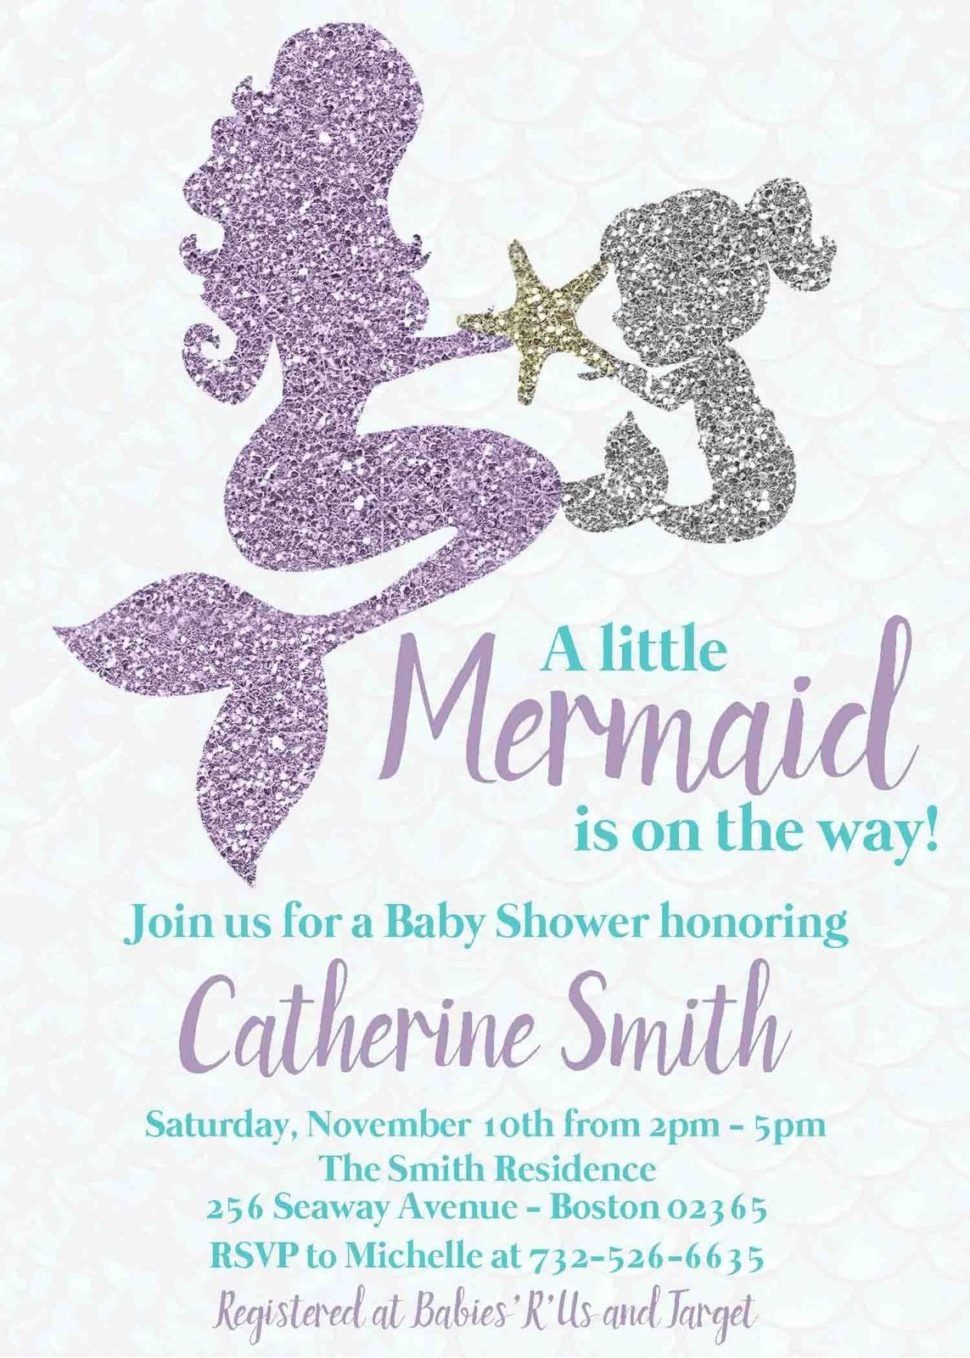 Medium Size of Baby Shower:baby Shower Invitations For Boys Homemade Baby Shower Decorations Baby Shower Ideas Nursery Themes For Girls Elegant Baby Shower Nursery For Girls Baby Shower Ideas Baby Shower Invitations For Boys